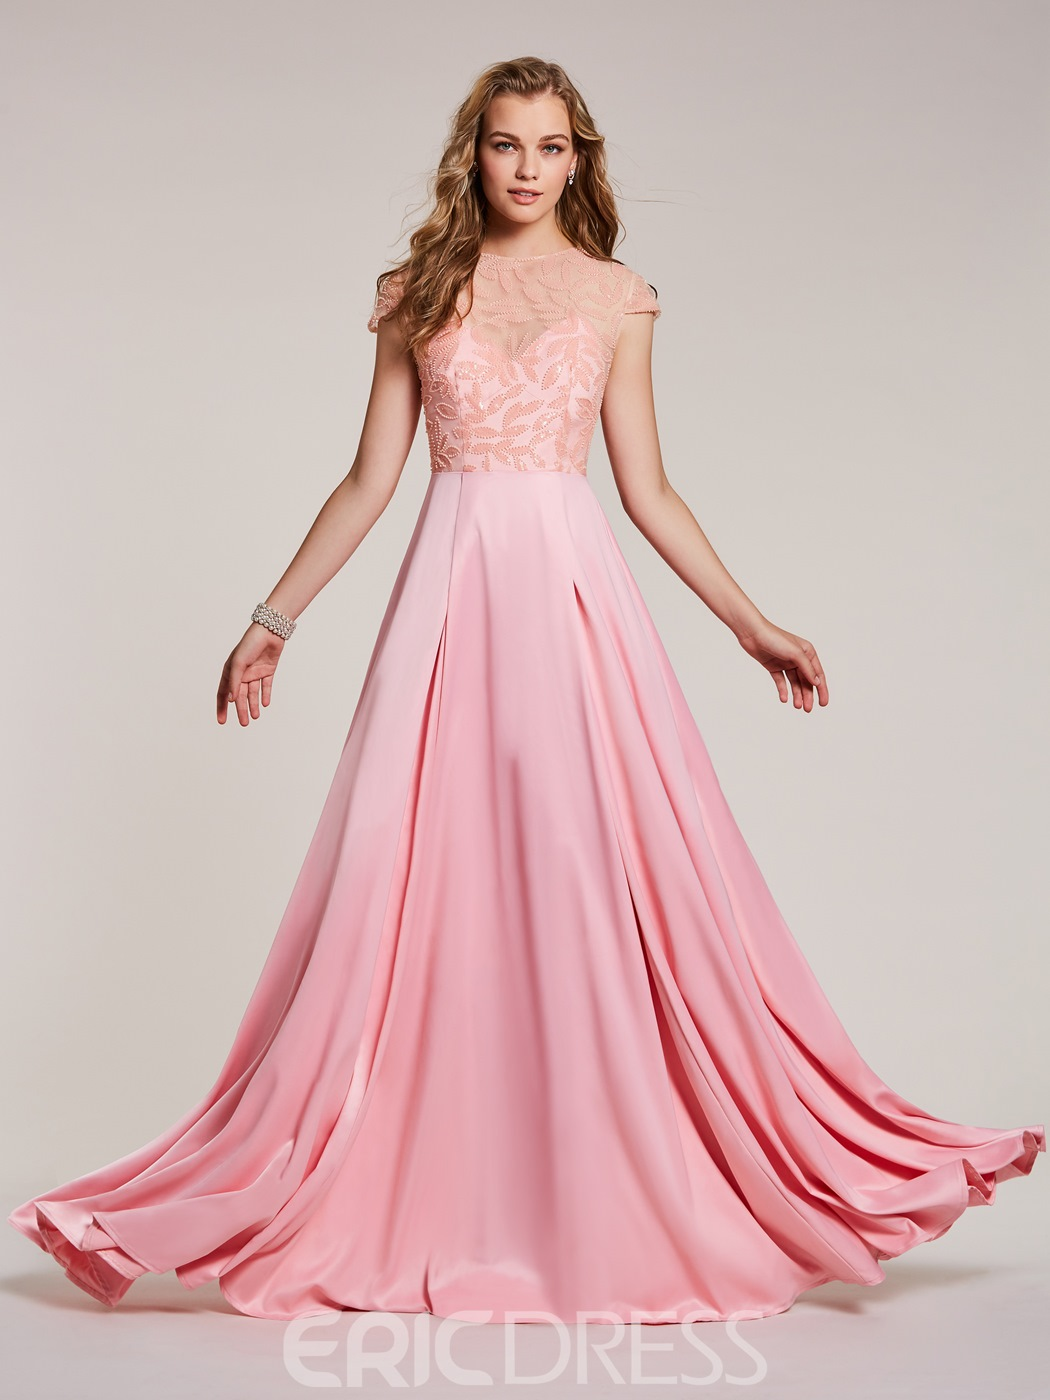 Ericdress A Line Scoop Neck Cap Sleeves Beaded Long Prom Dress